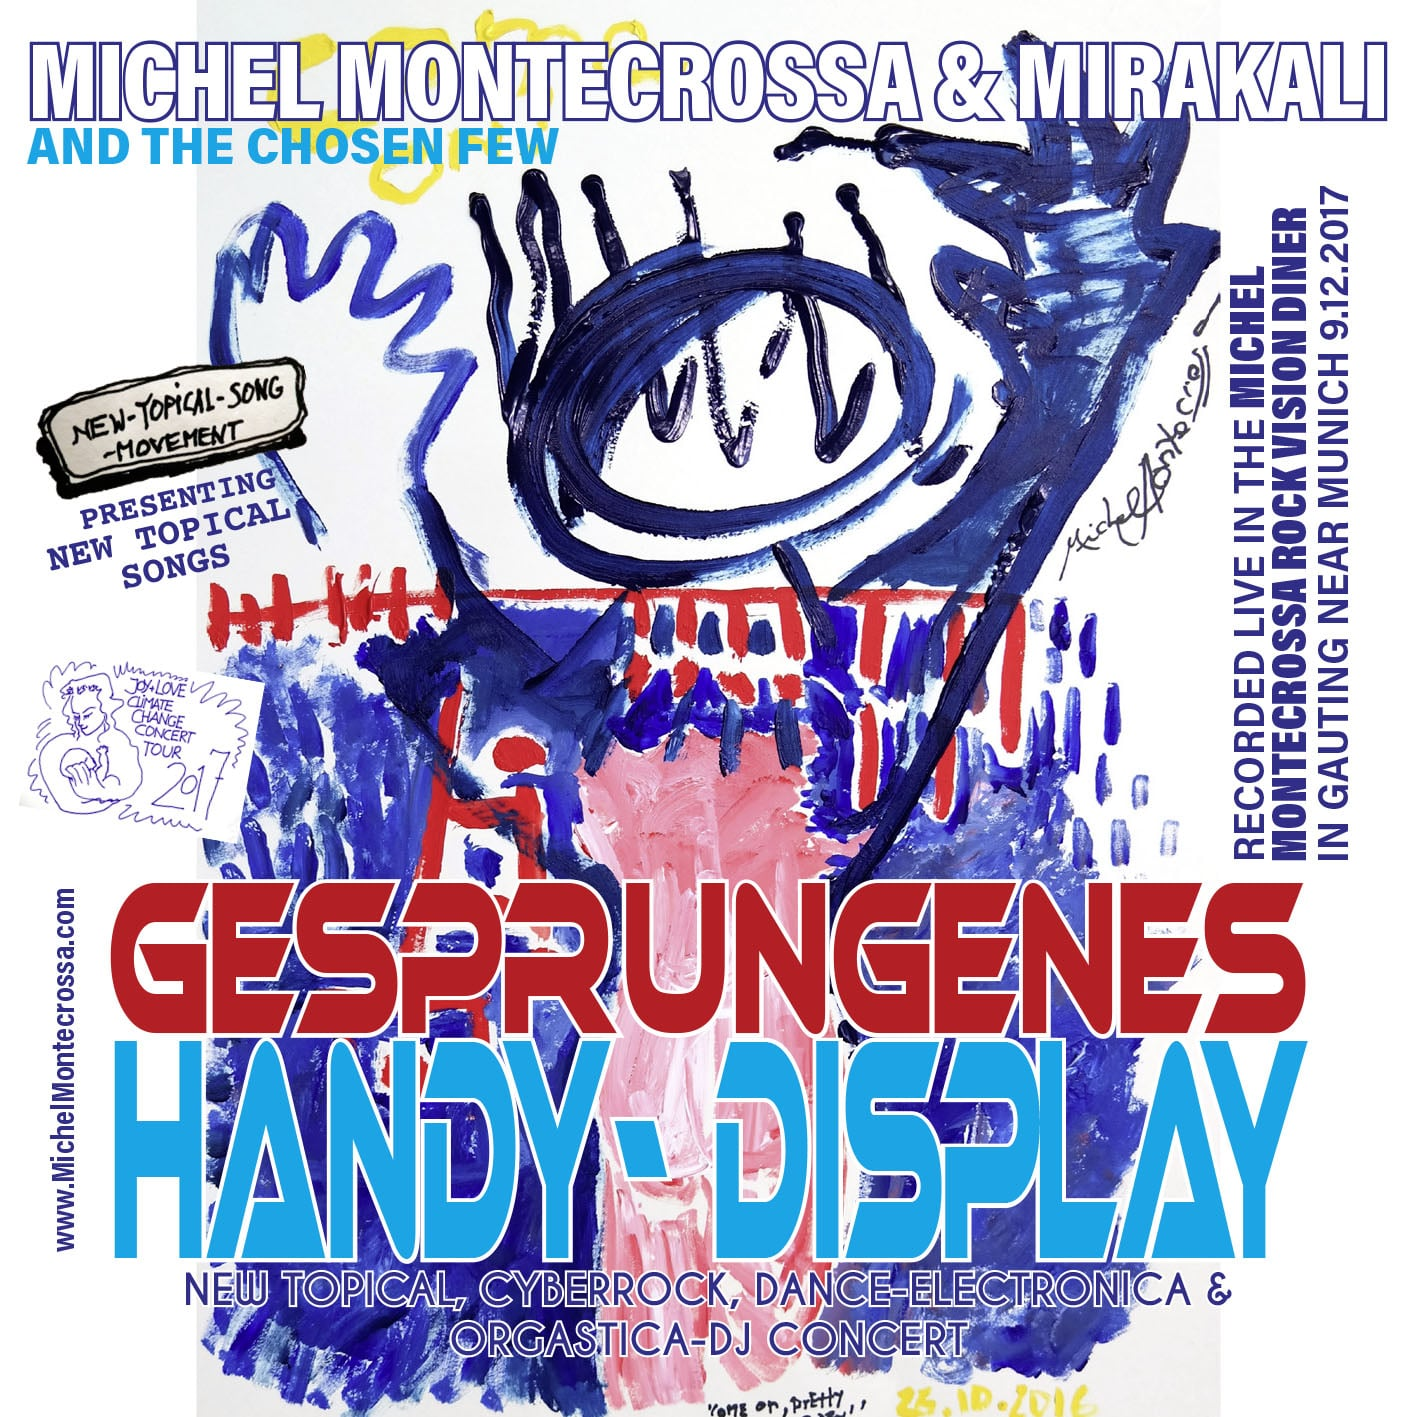 Gesprungenes Handy-Display Concert